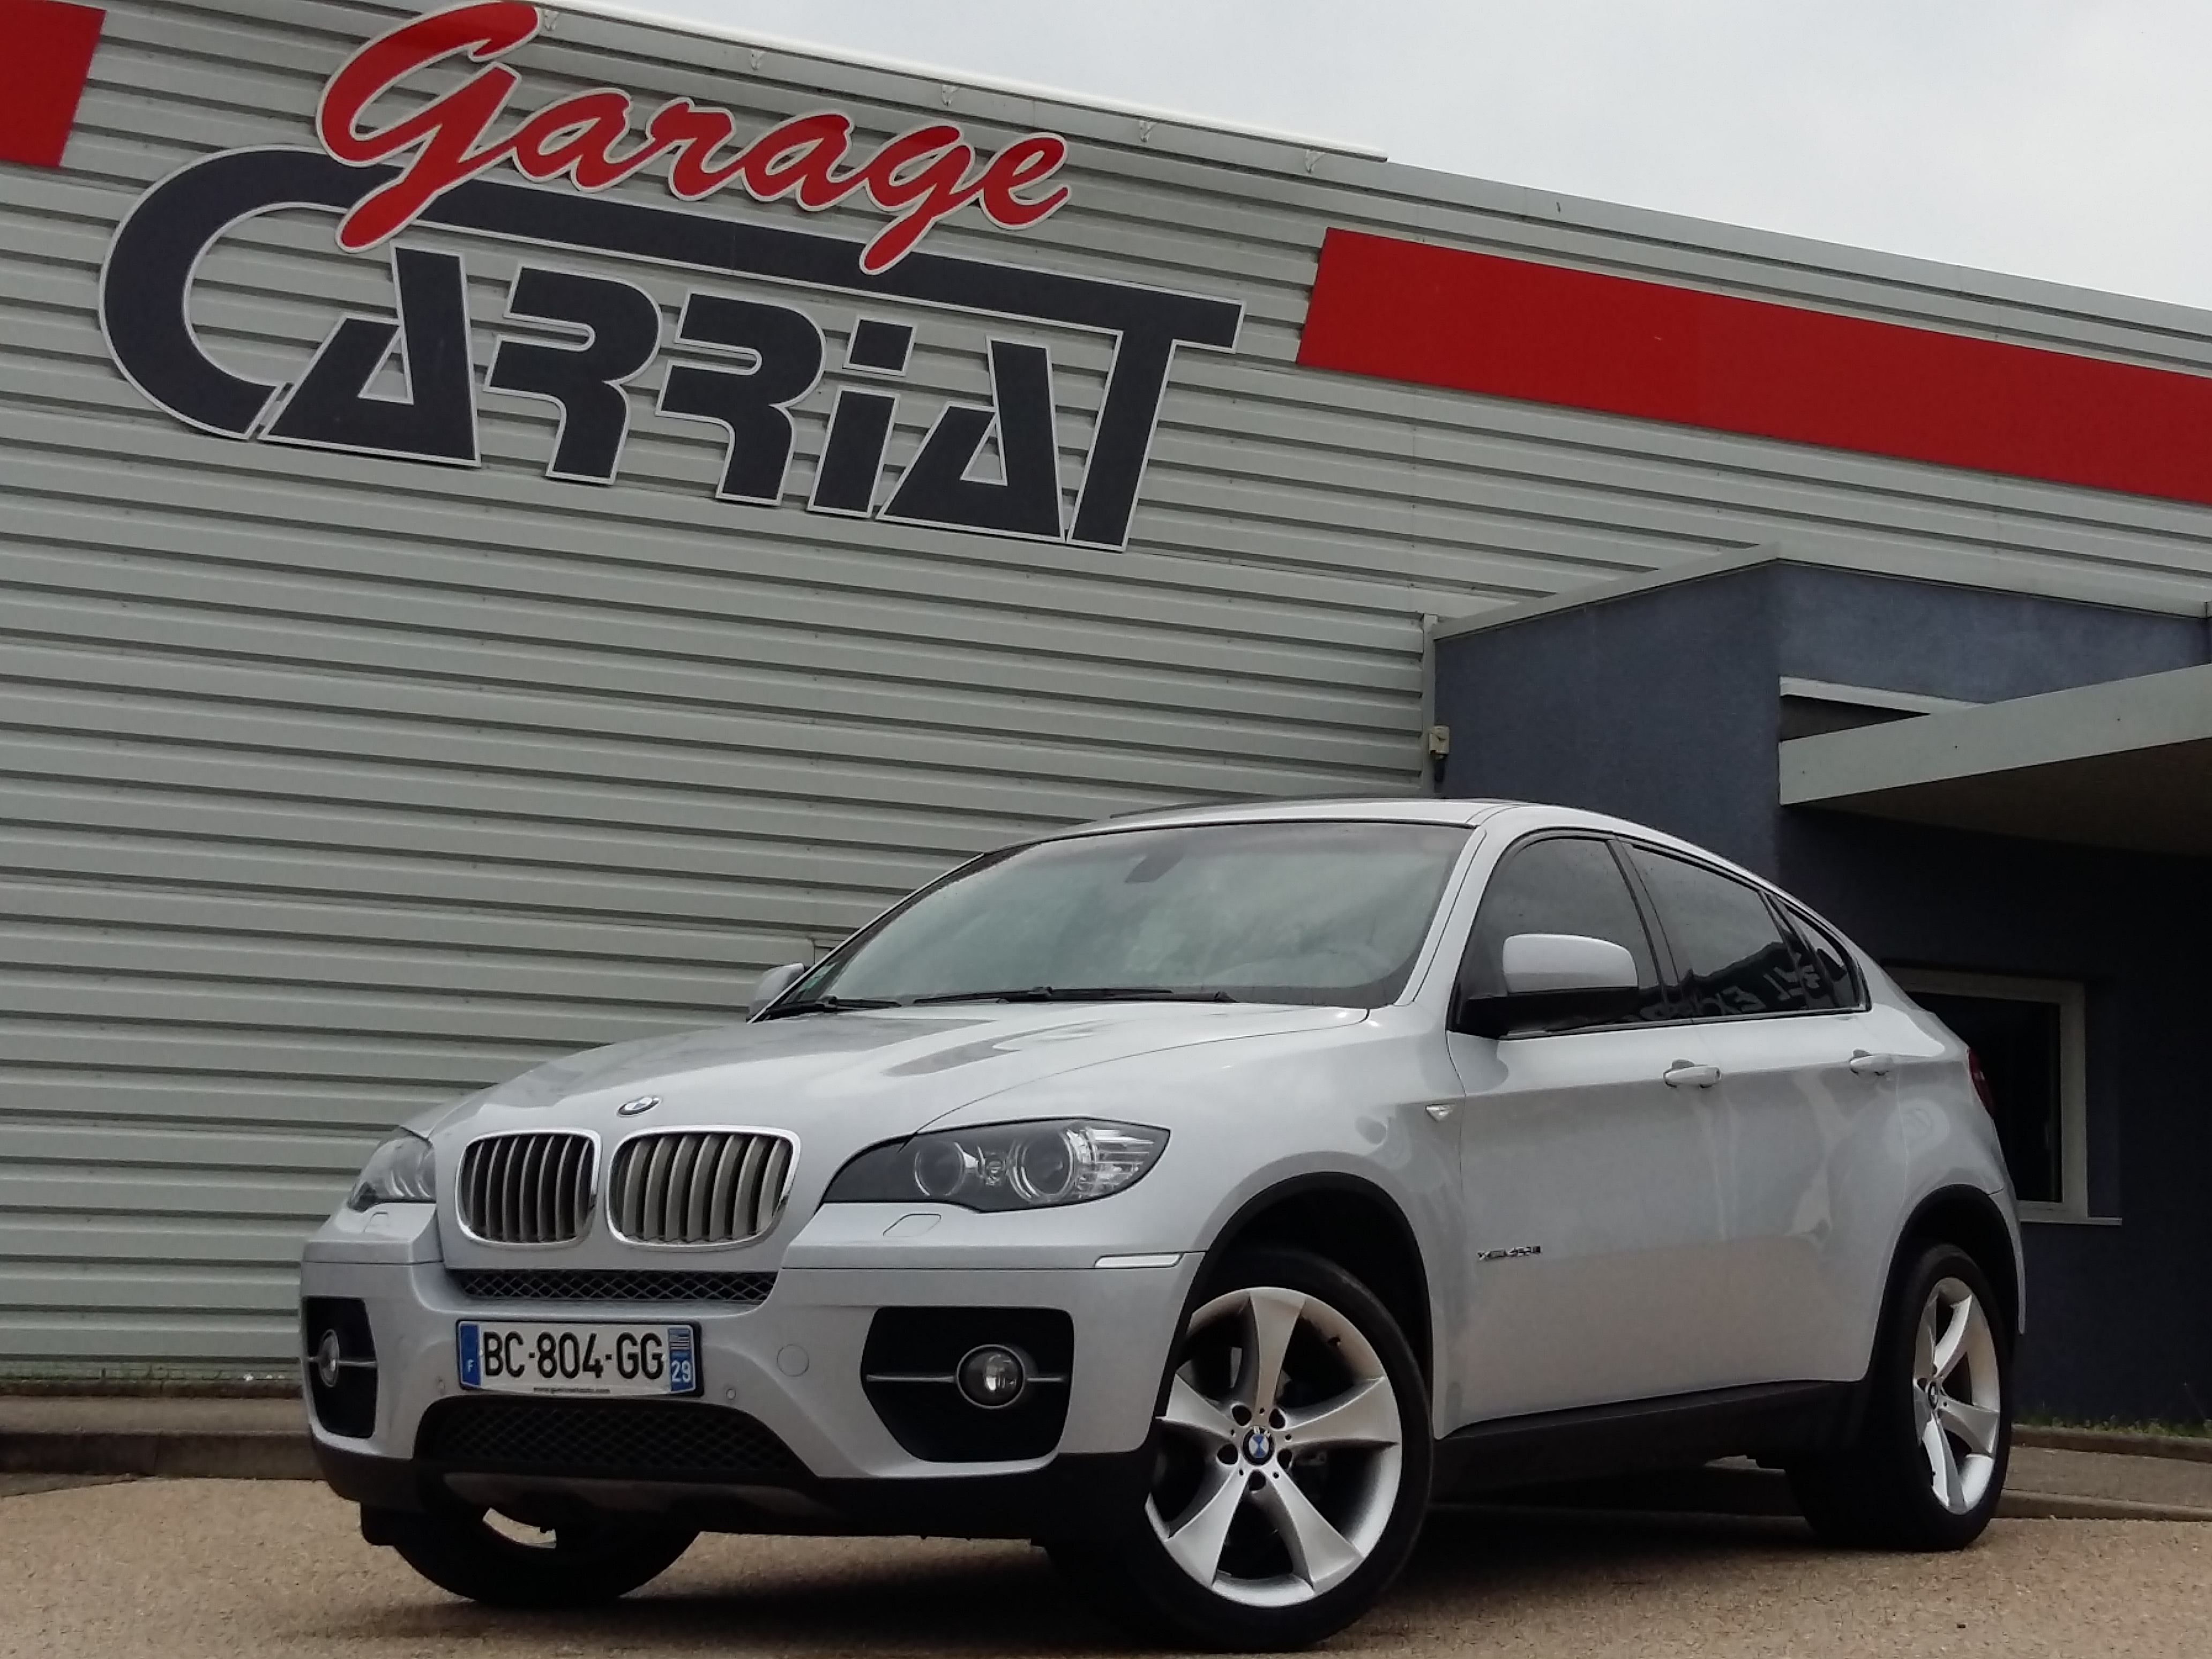 voiture bmw x6 x6 306 m sport bva8 occasion diesel 2010 134990 km 37990 bourg. Black Bedroom Furniture Sets. Home Design Ideas